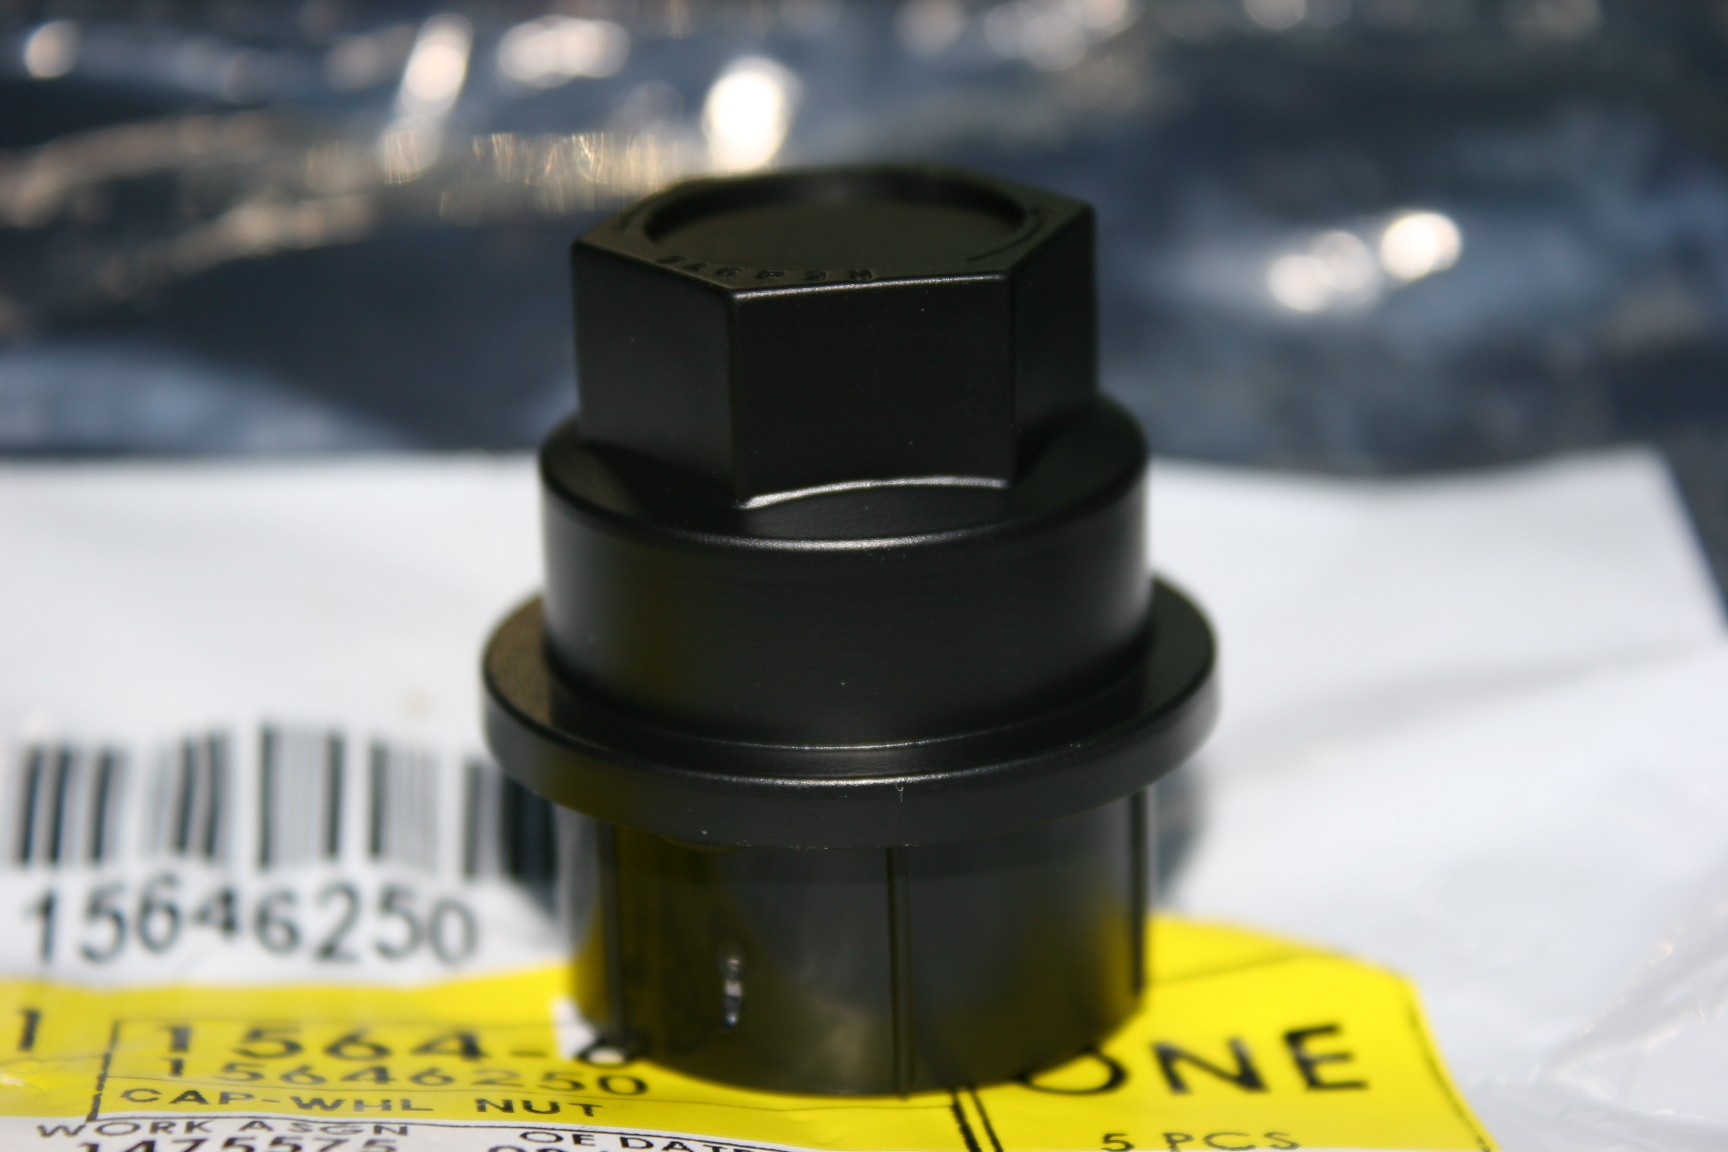 15646250, Cap GM part